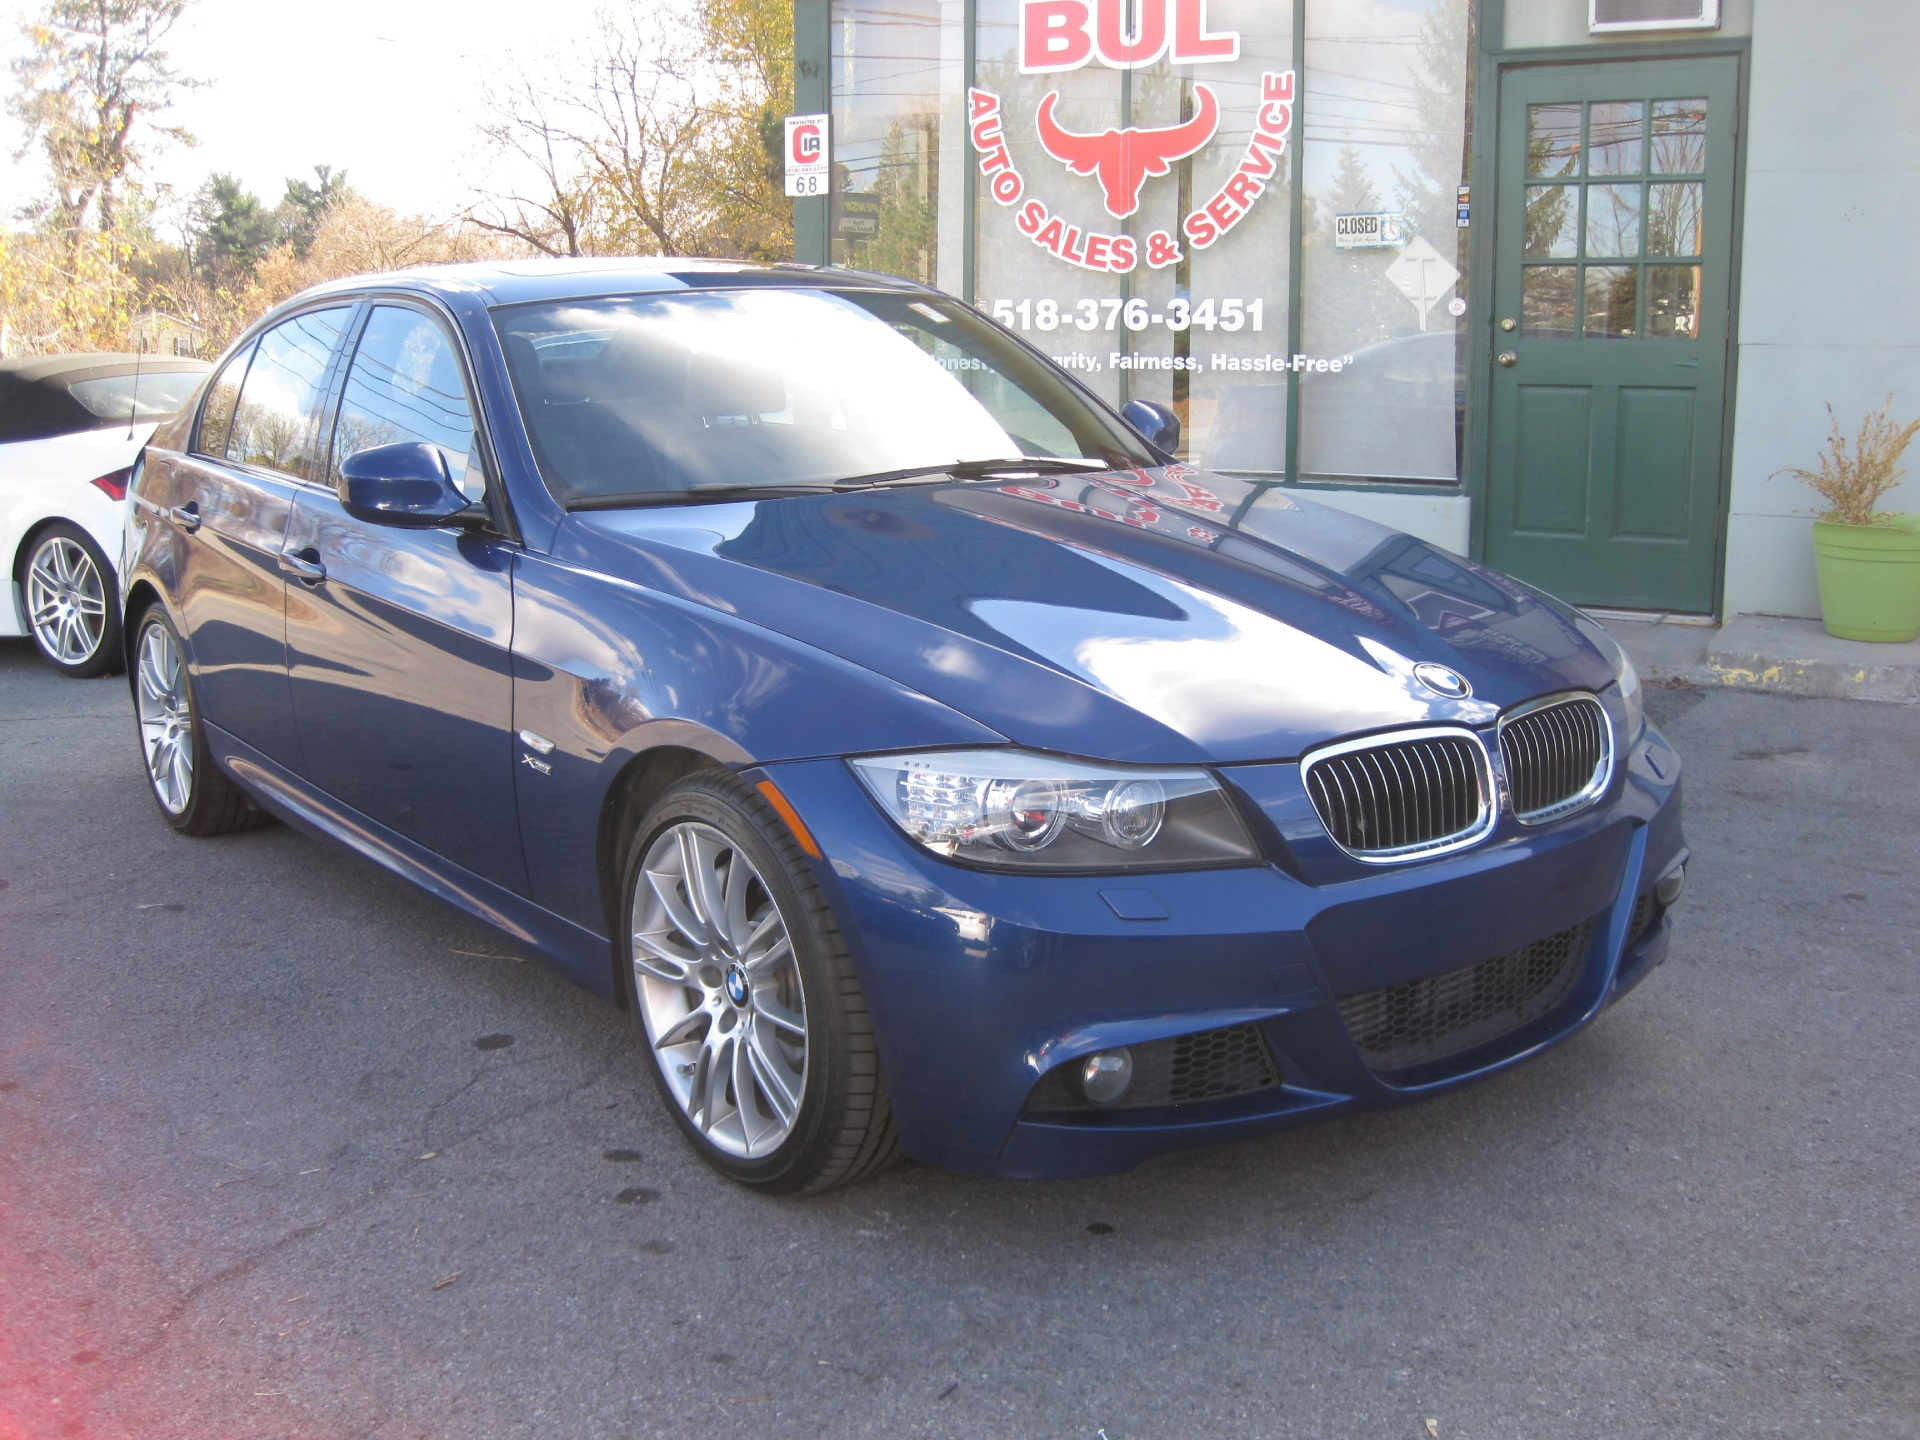 2010 bmw 3 series 335i xdrive super rare 6 speed manual m sport n54 stock 15141 for sale near. Black Bedroom Furniture Sets. Home Design Ideas